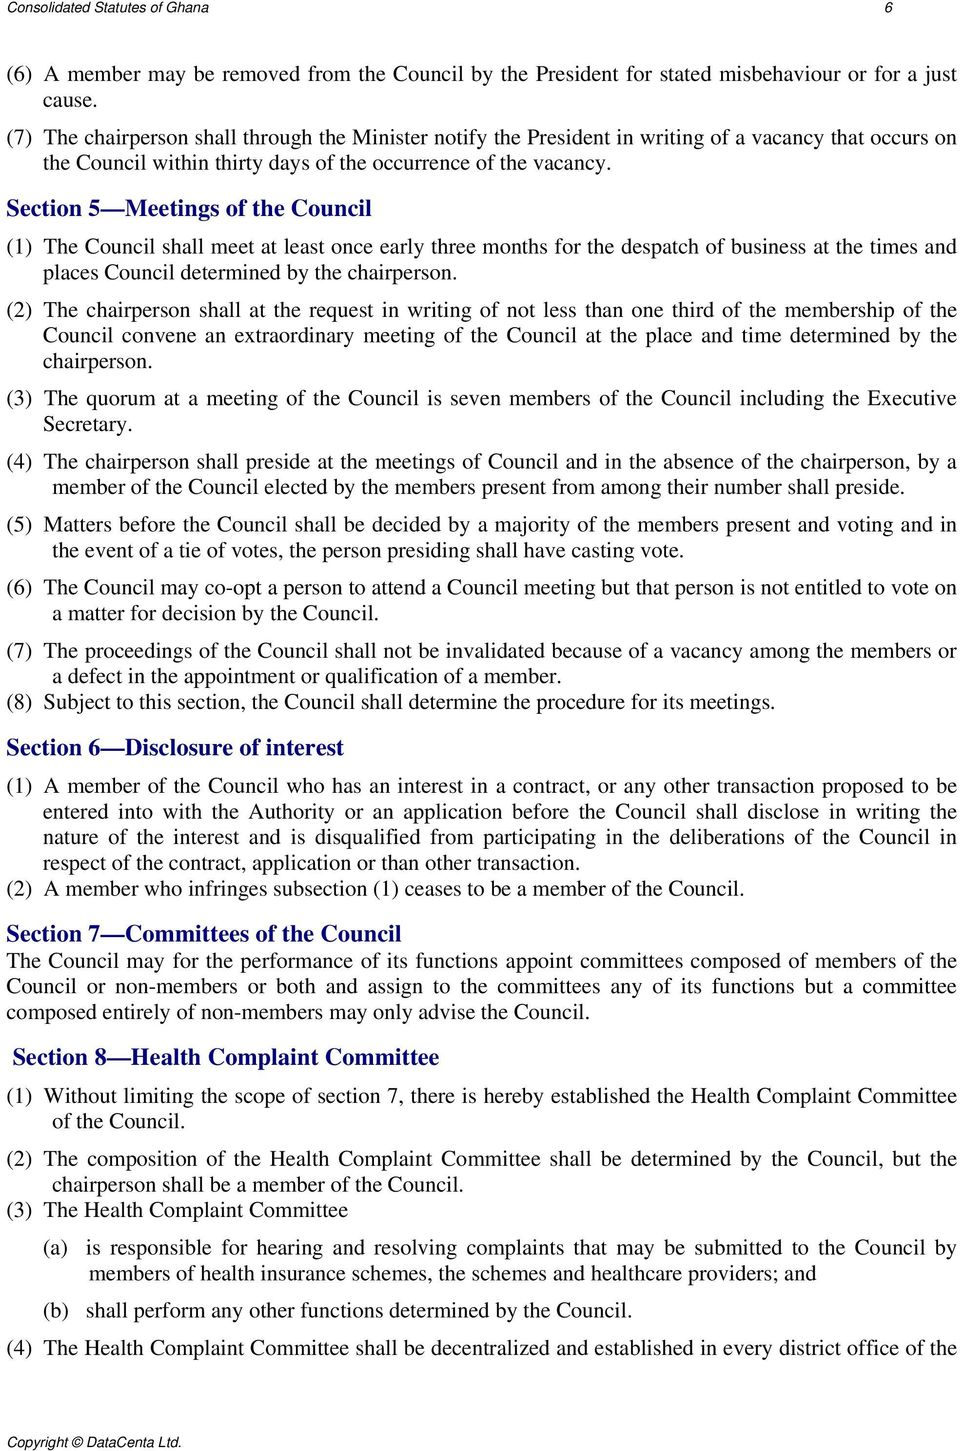 Section 5 Meetings of the Council (1) The Council shall meet at least once early three months for the despatch of business at the times and places Council determined by the chairperson.